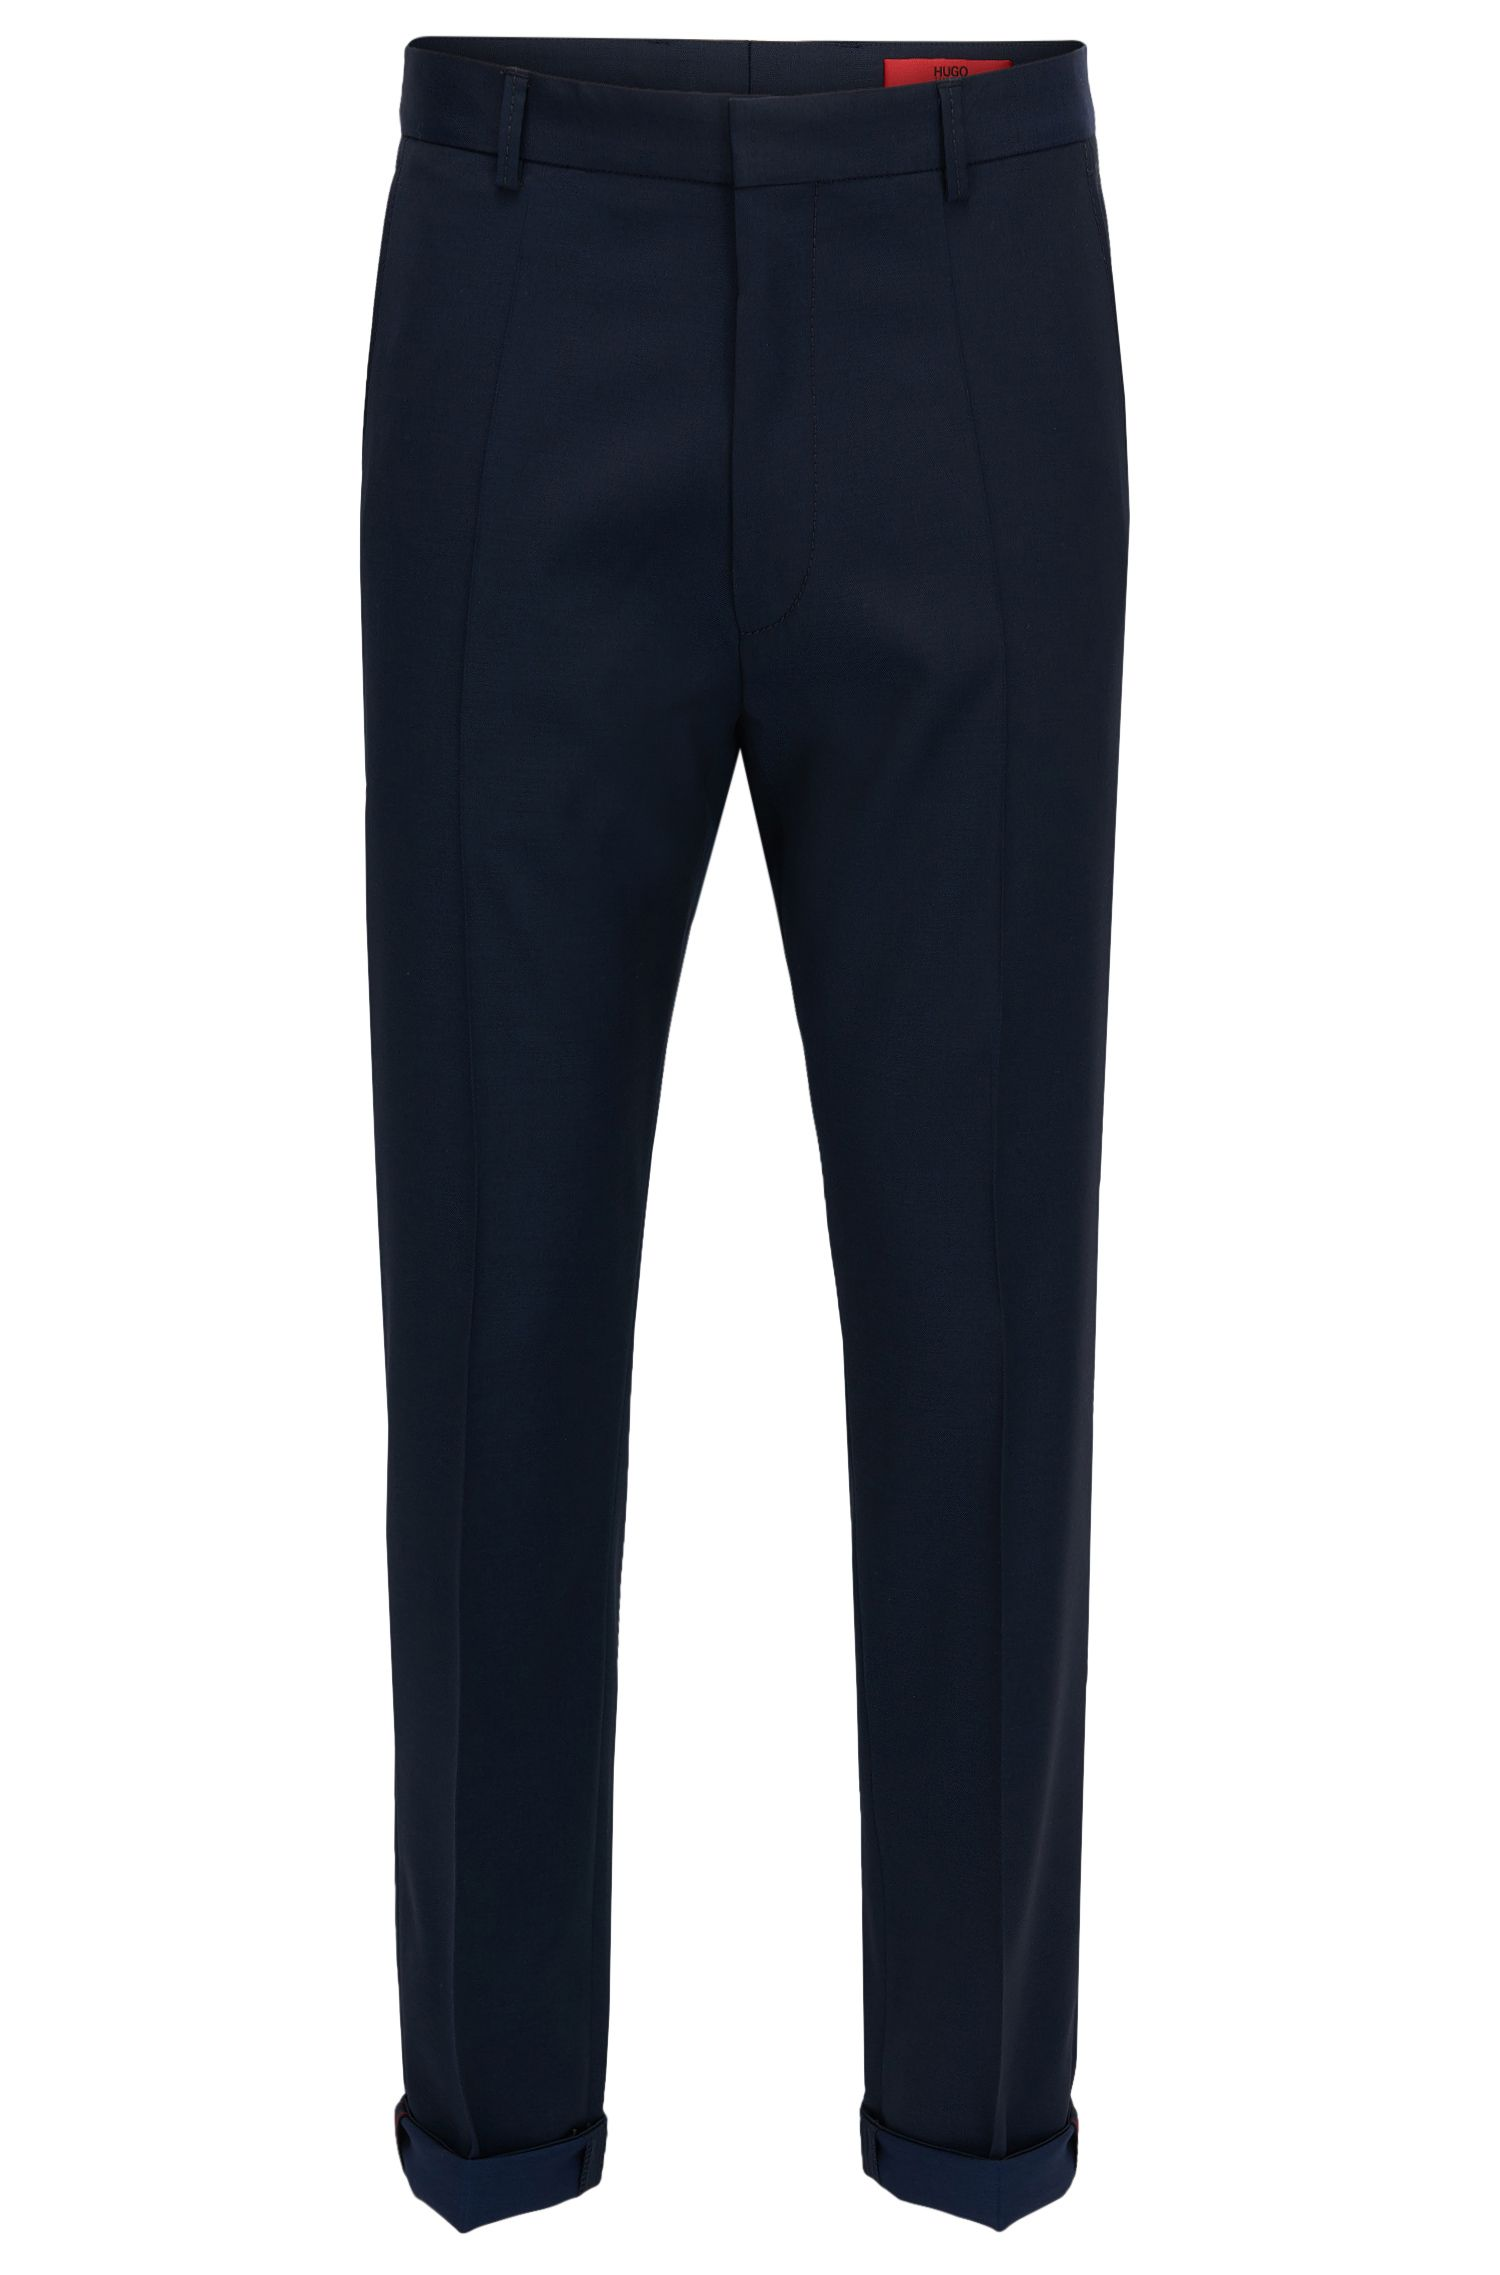 Virgin Wool Dress Pant, Extra Slim Fit | Hendris